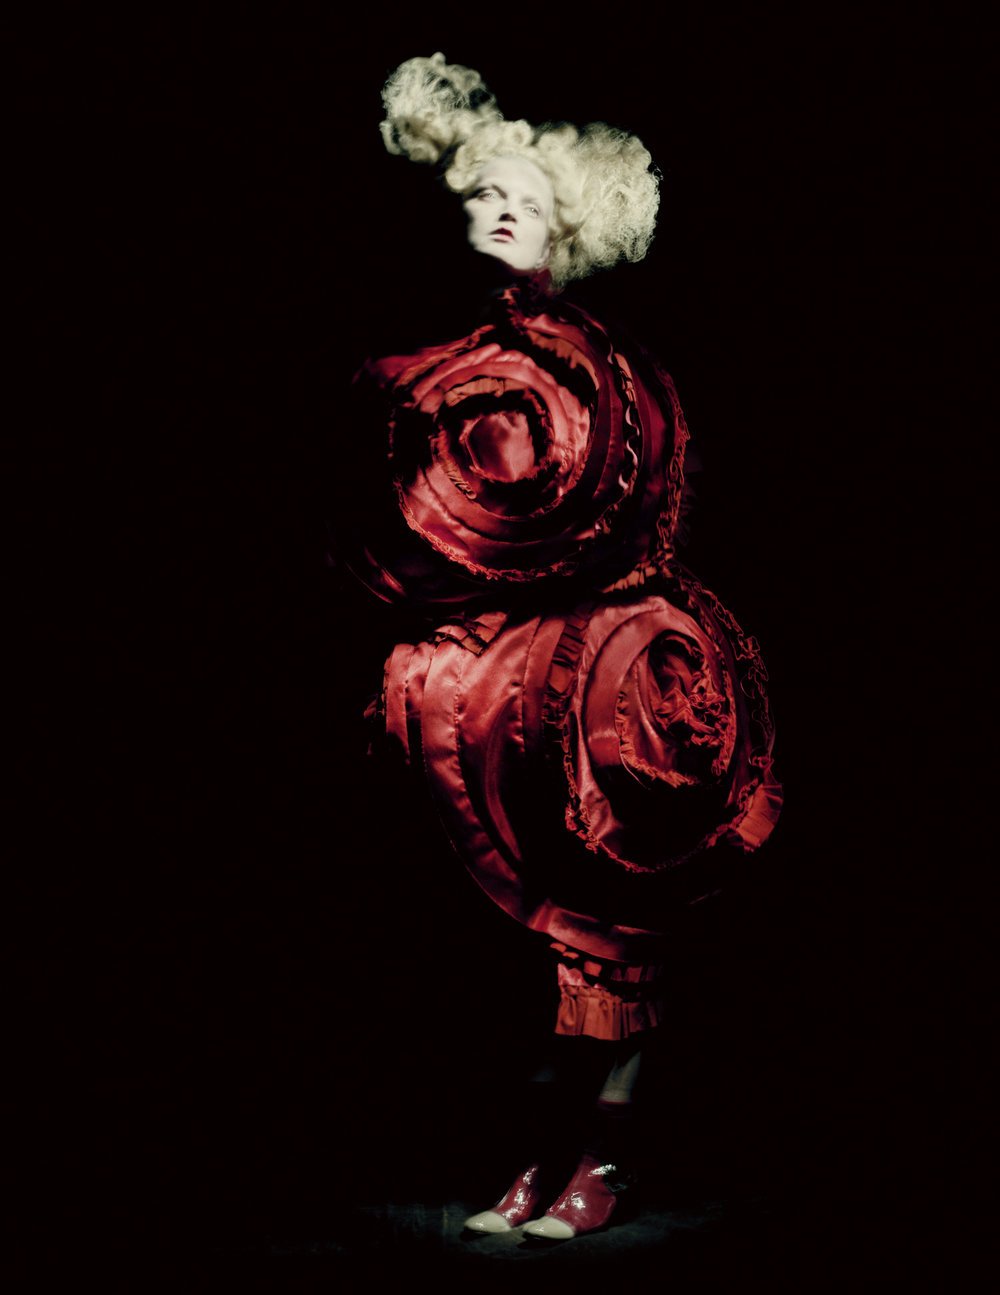 Rei Kawakubo (Japanese, born 1942) for Comme des Garçons  (Japanese, founded 1969), Blood and Roses, spring/summer  2015; Courtesy of Comme des Garçons.  Photograph by © Paolo Roversi; Courtesy of The Metropolitan  Museum of Art